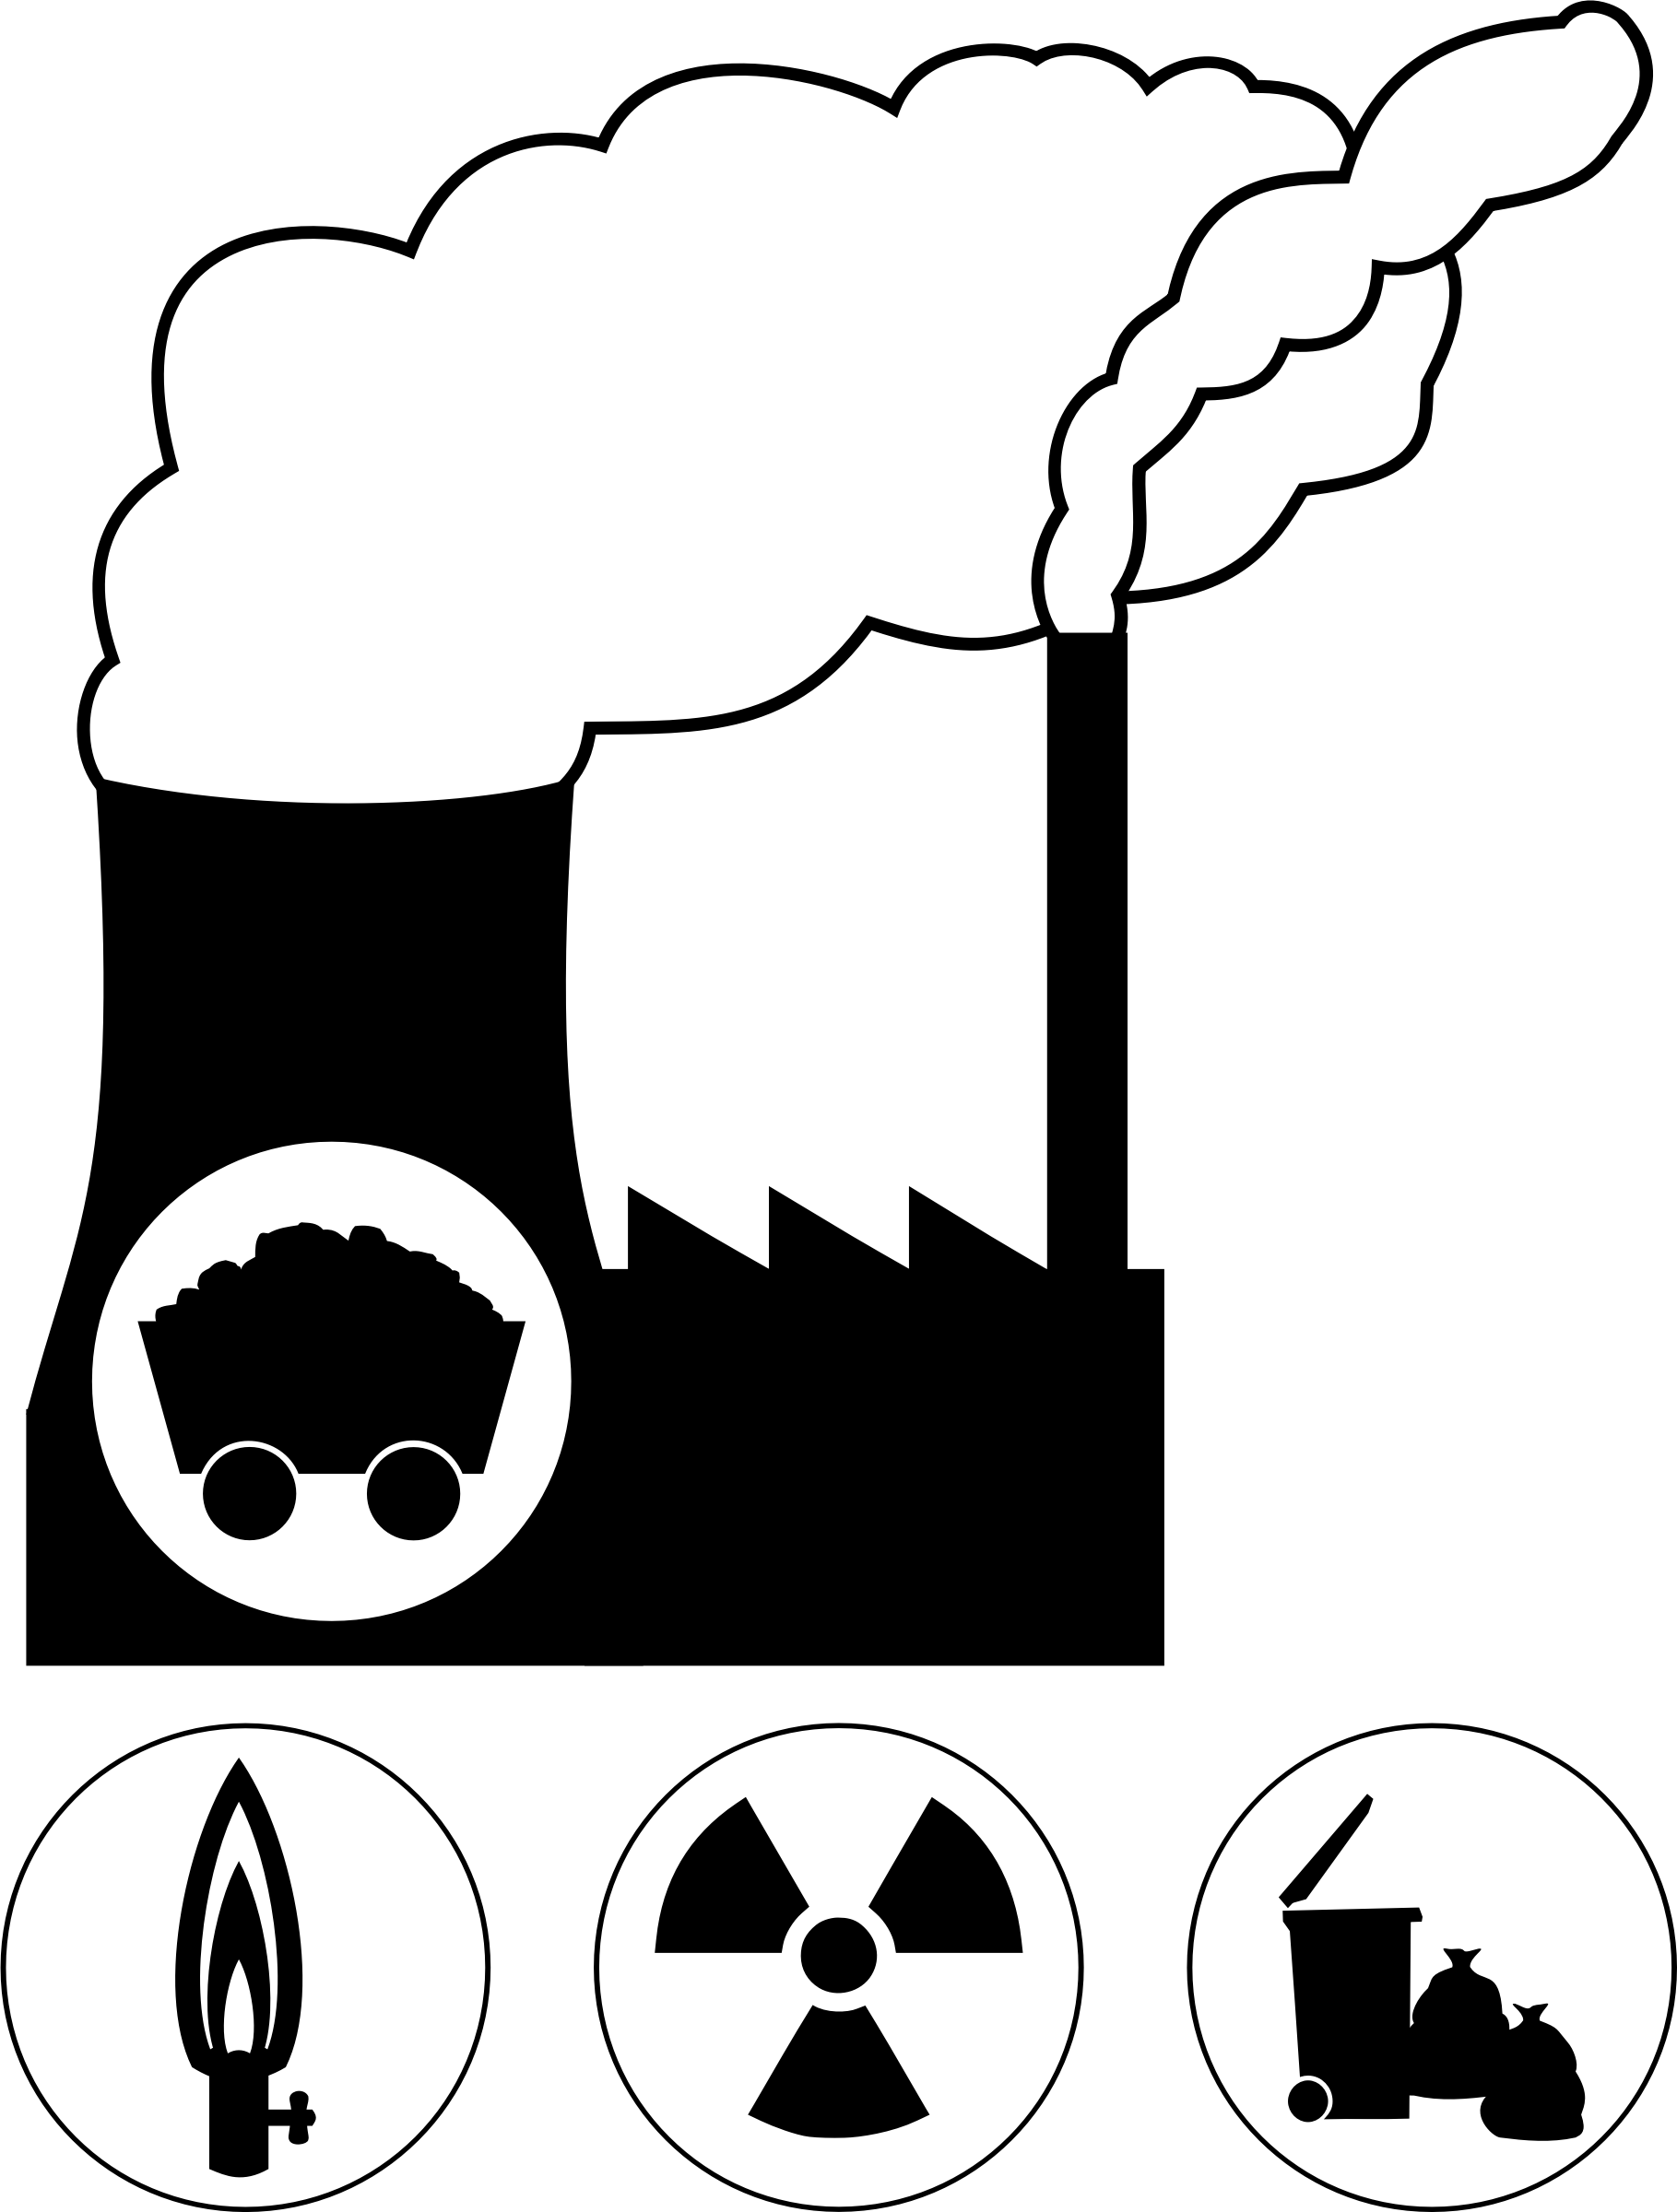 Coal power plant clipart